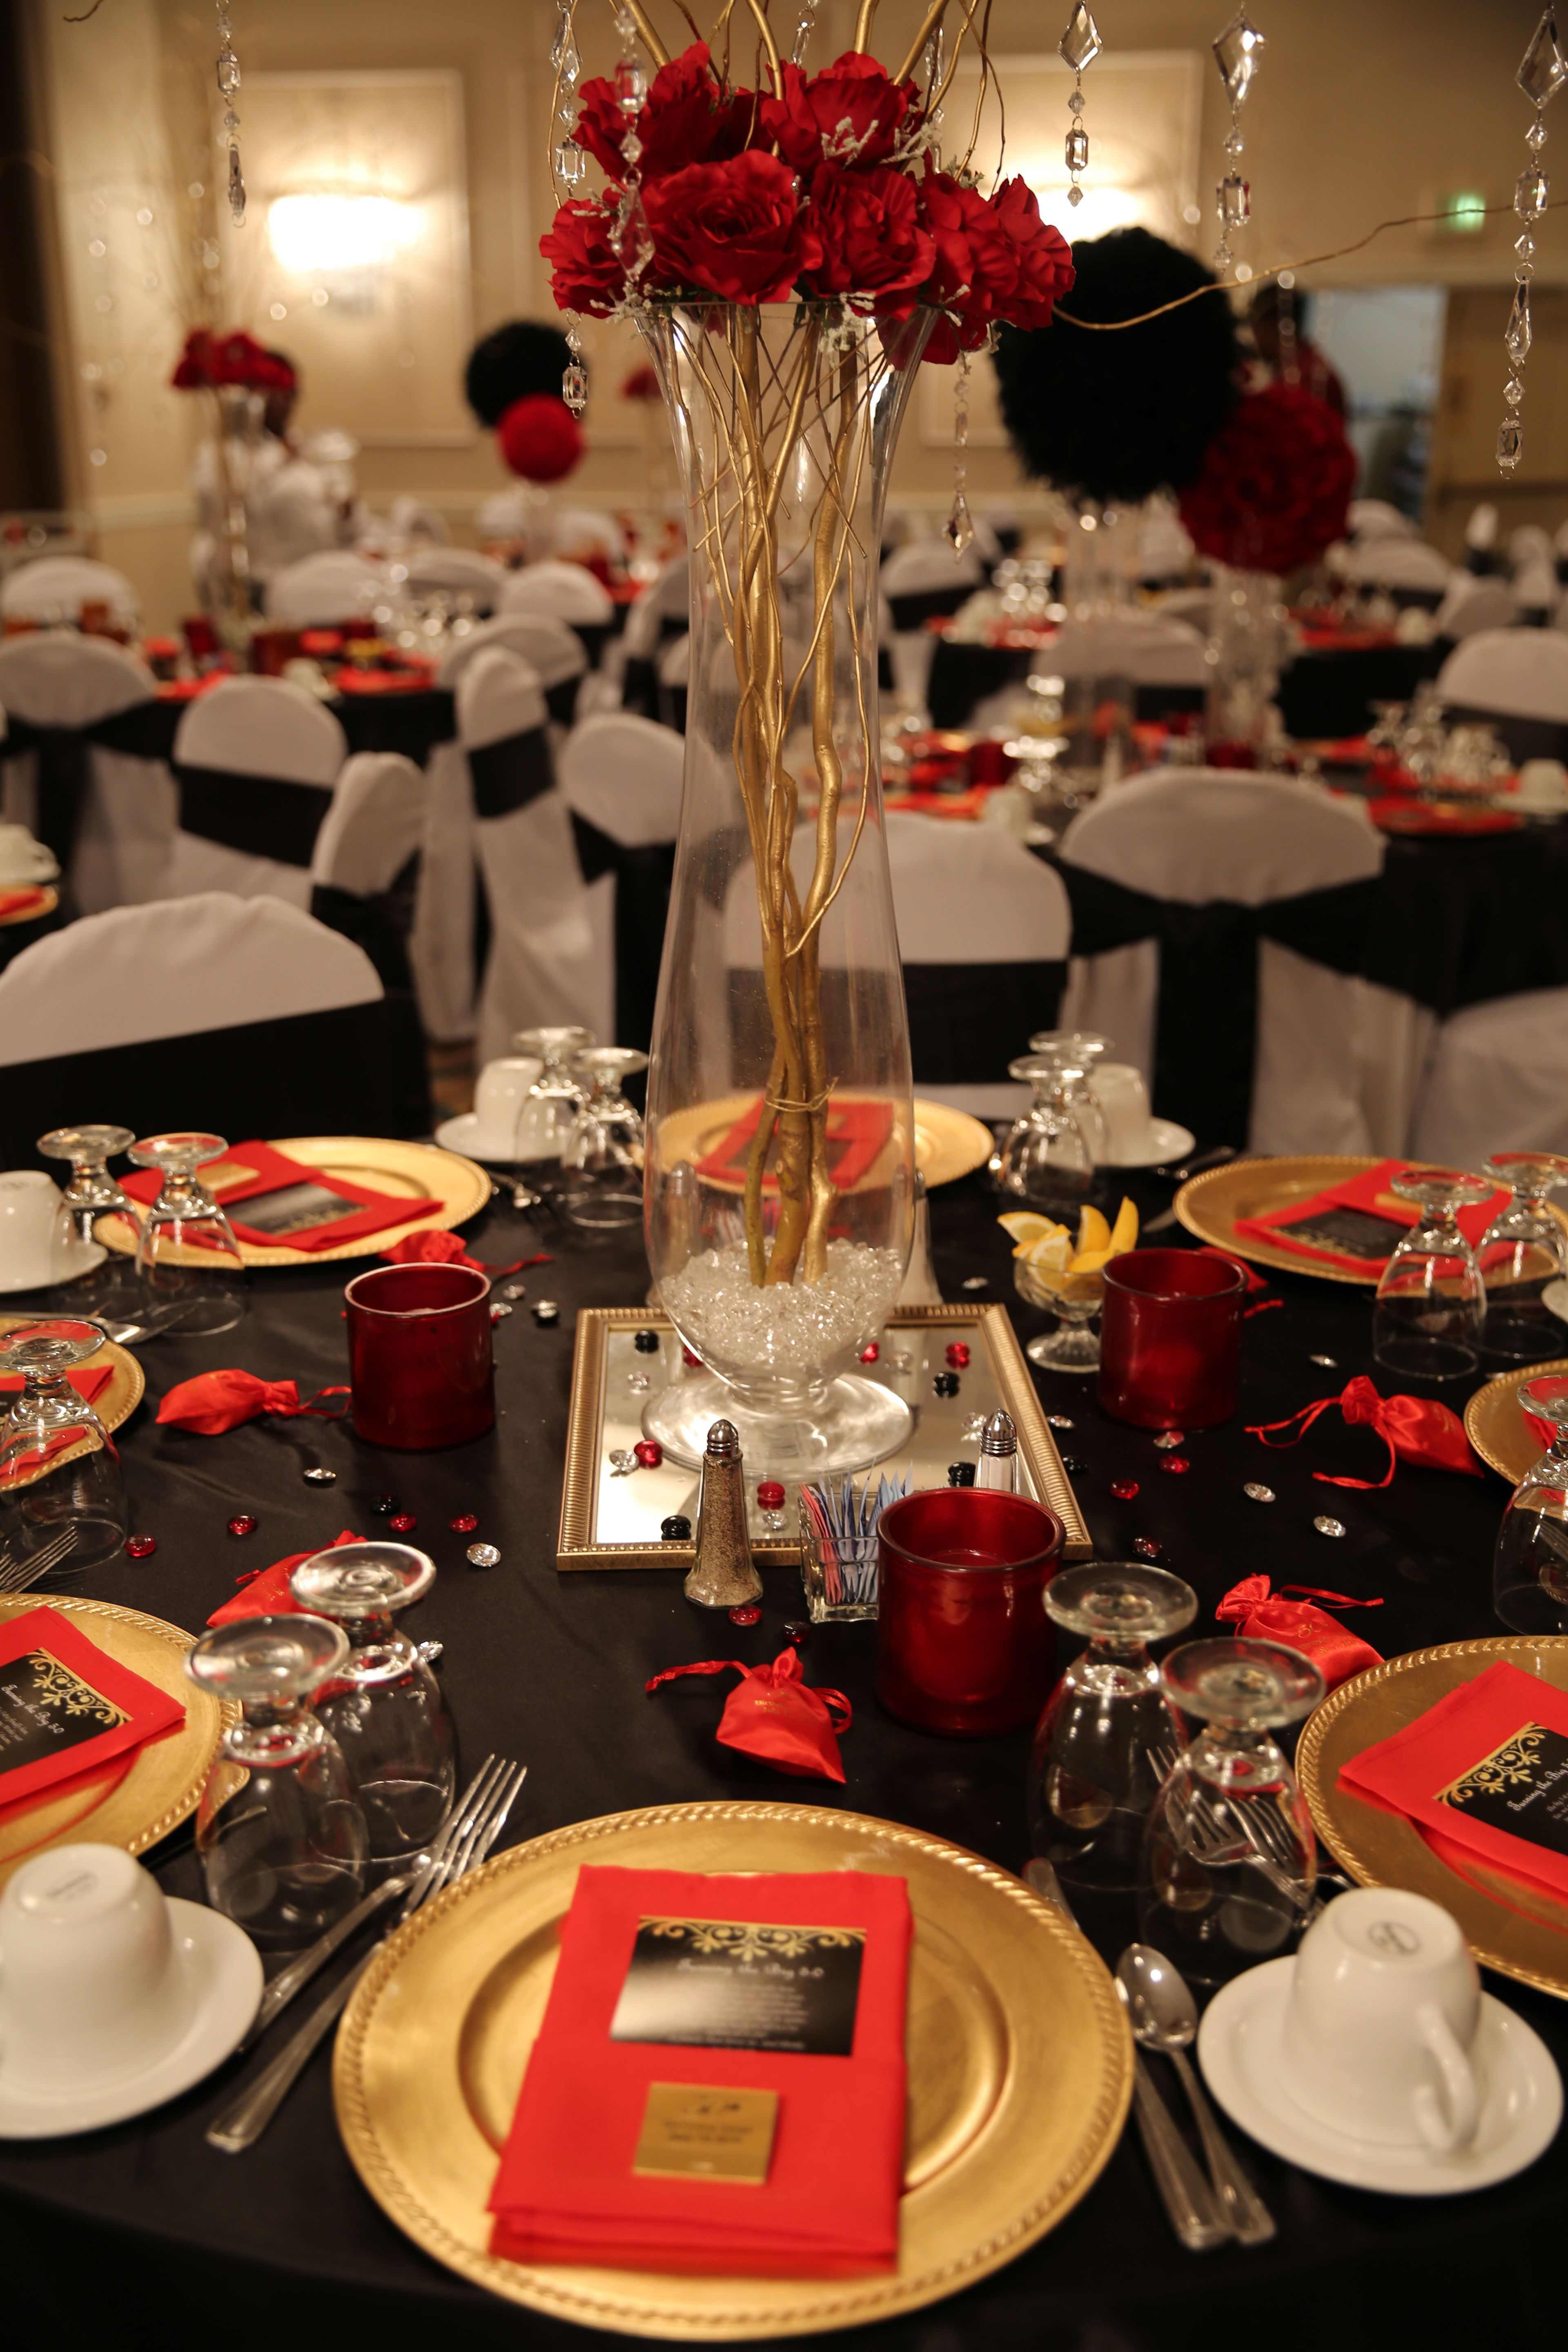 Red Black And Gold Table Decorations For 50th Birthday Party Red Carpet Affair Black And Gold Centerpieces